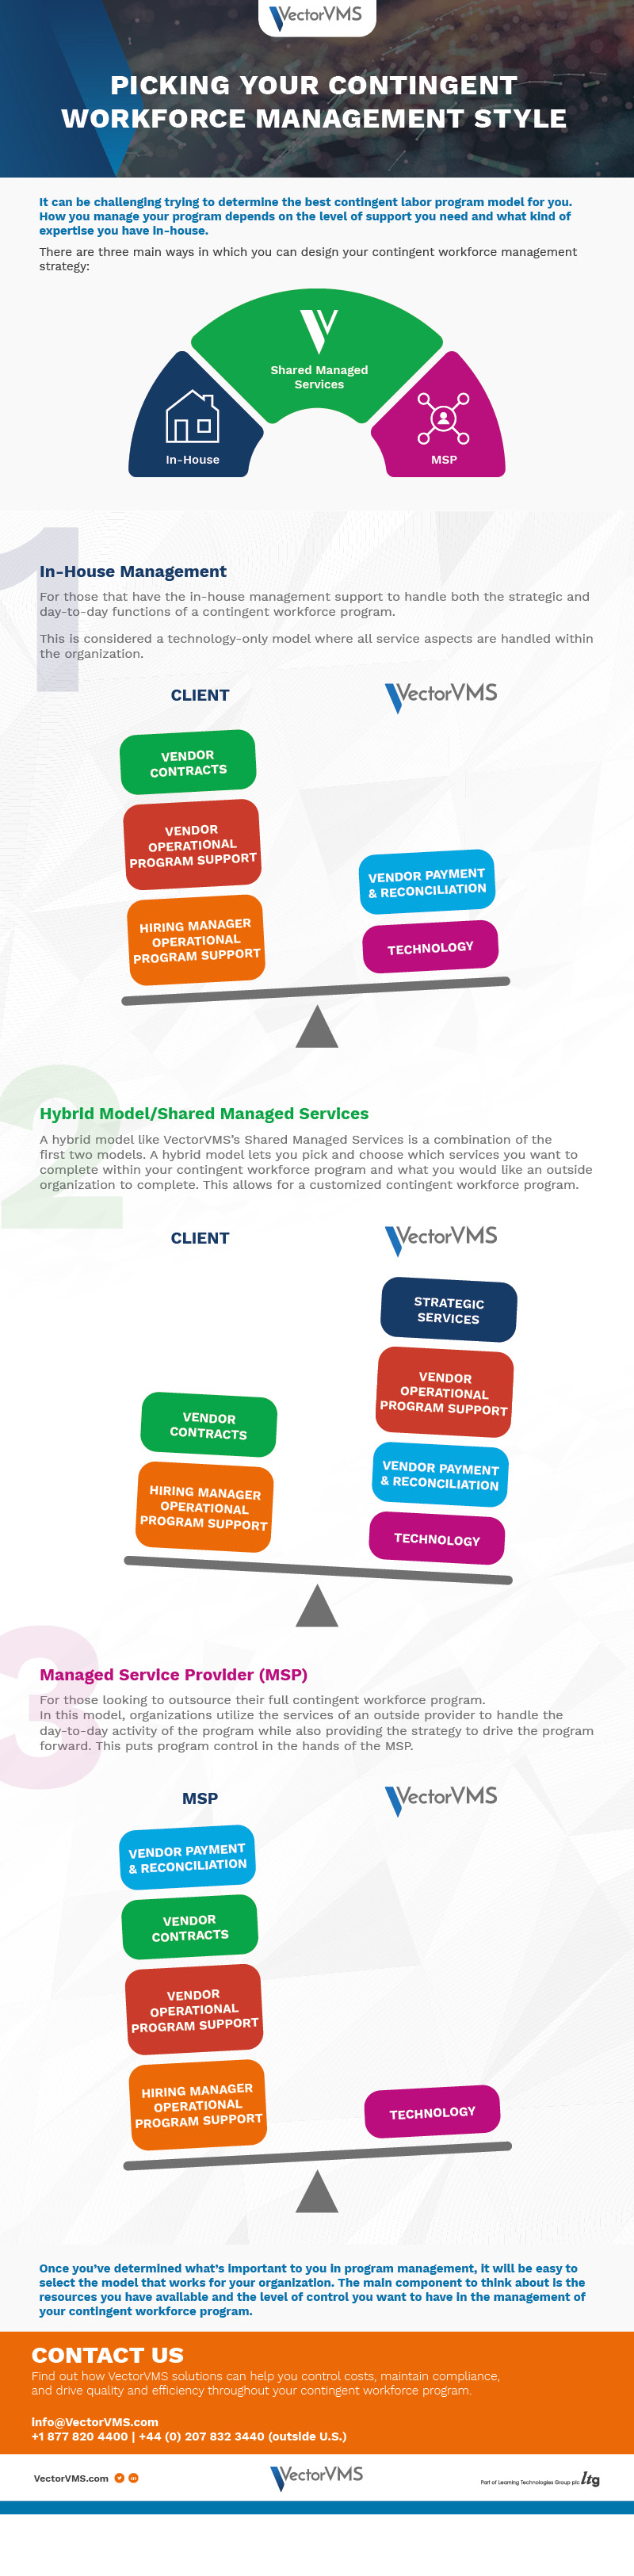 Picking Your Contingent Workforce Management Style Infographic